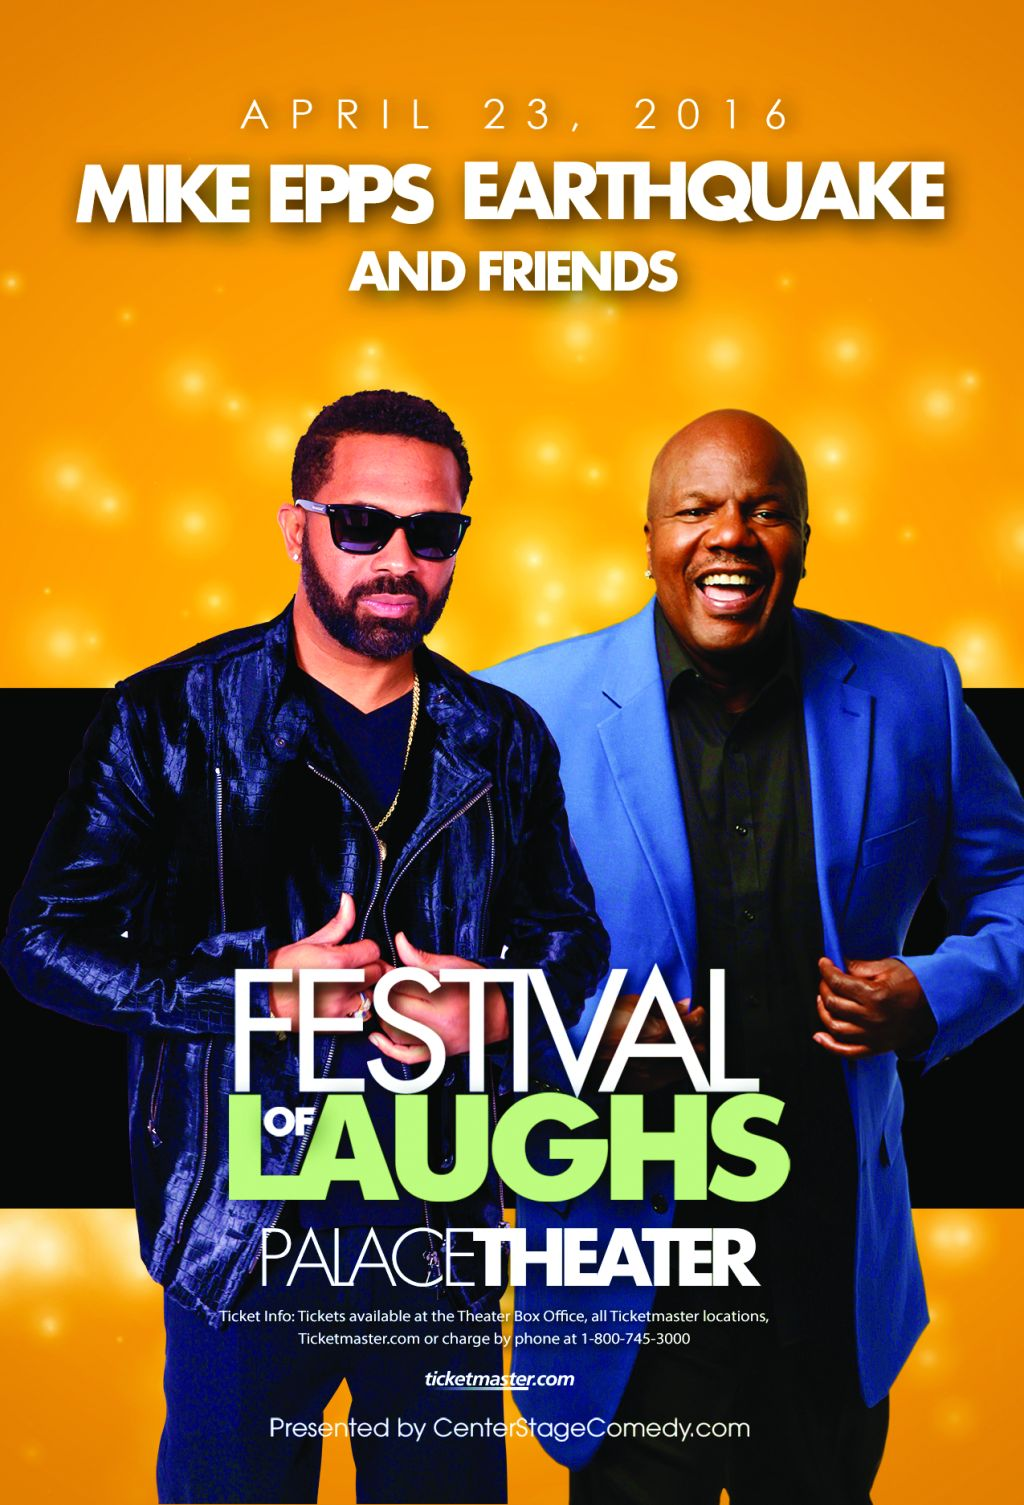 Festival of Laughs Mike Epps